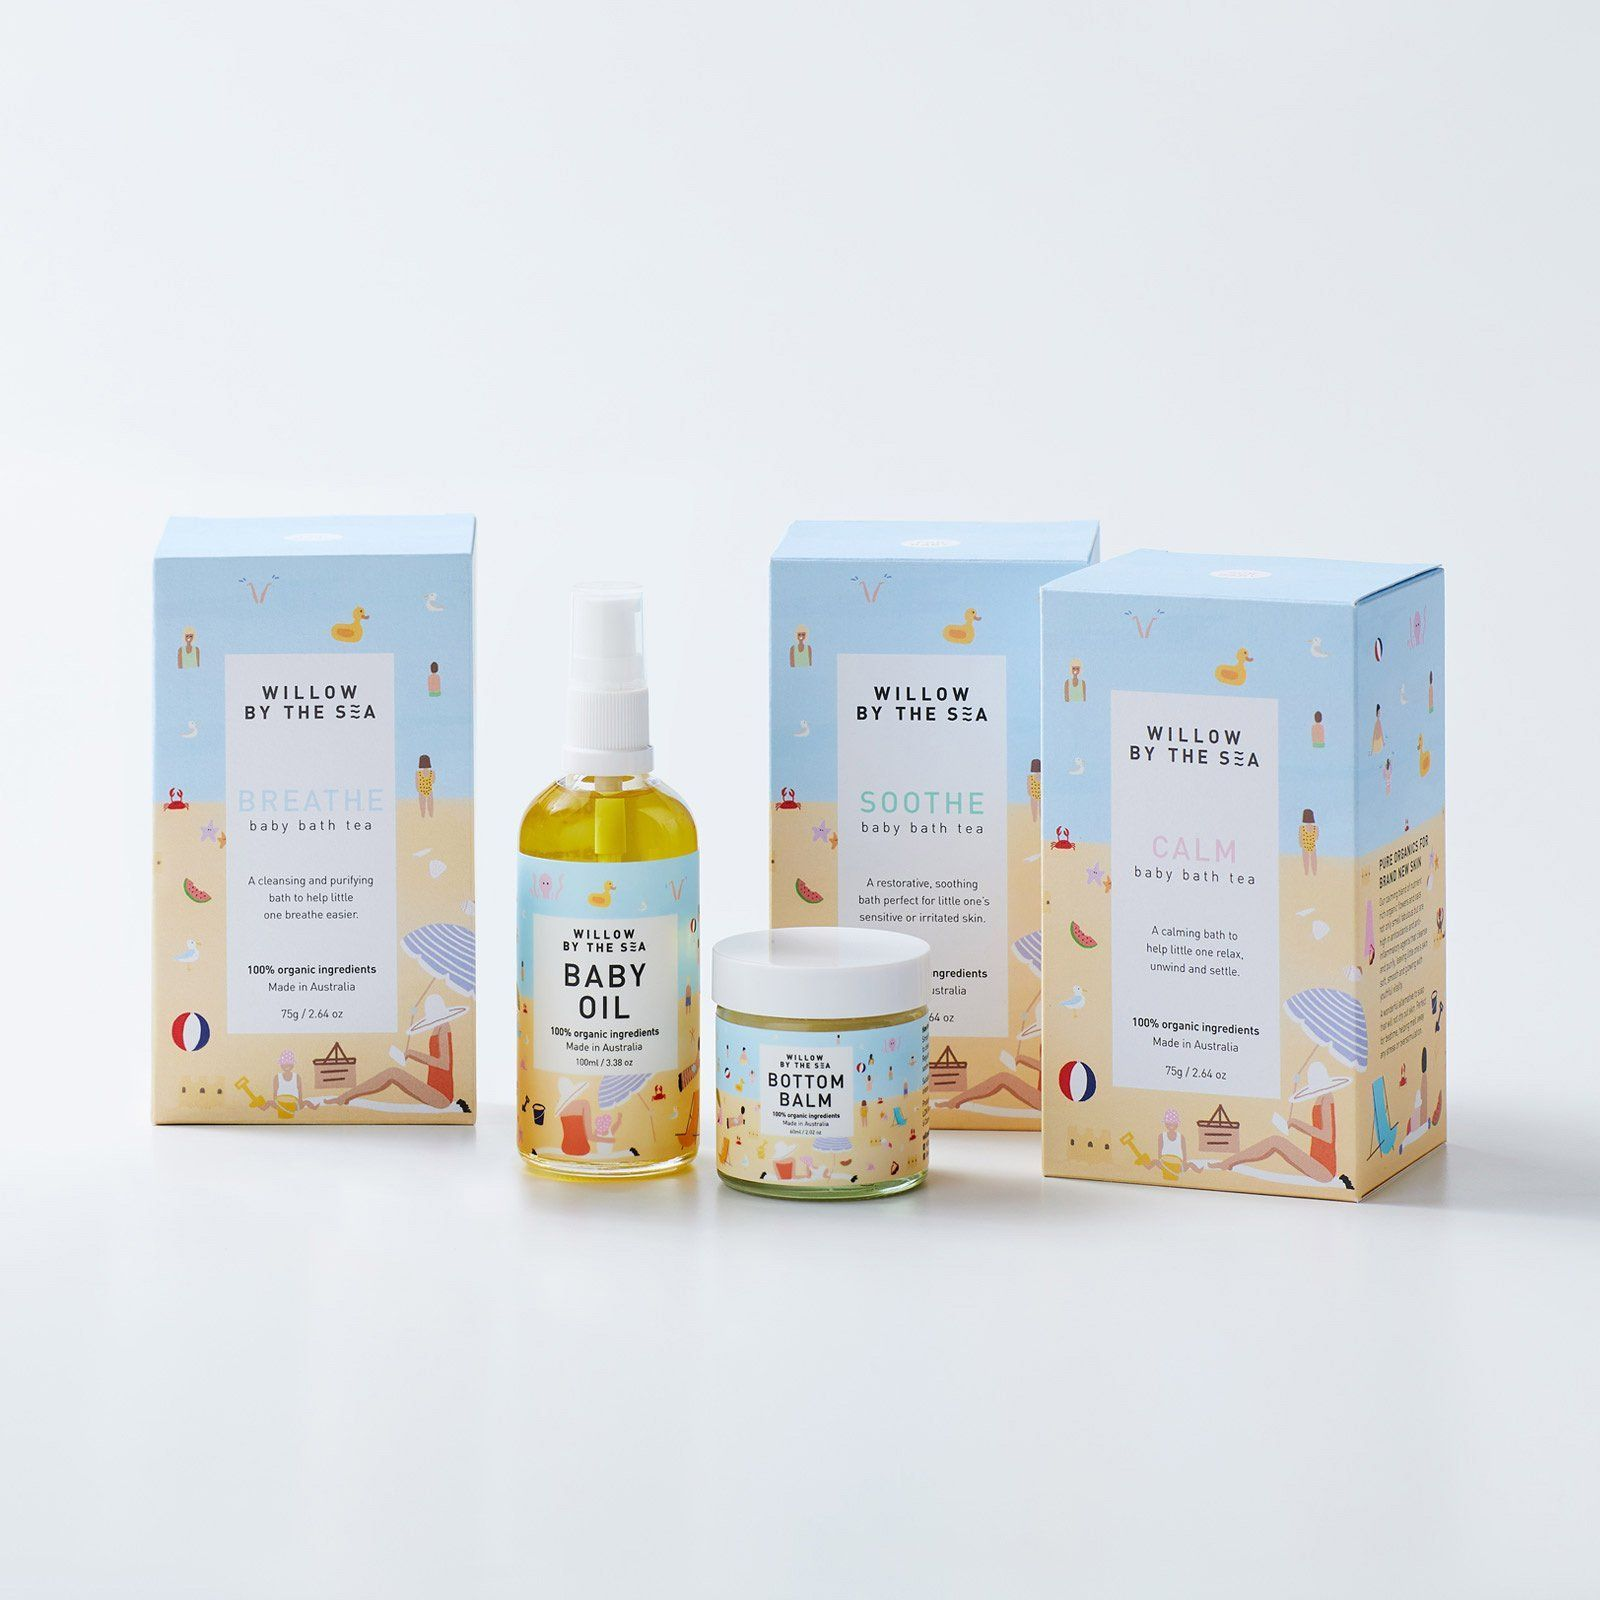 Product Packaging Design Set In 2020 Organic Baby Skincare Baby Skin Care Skin Care Packaging